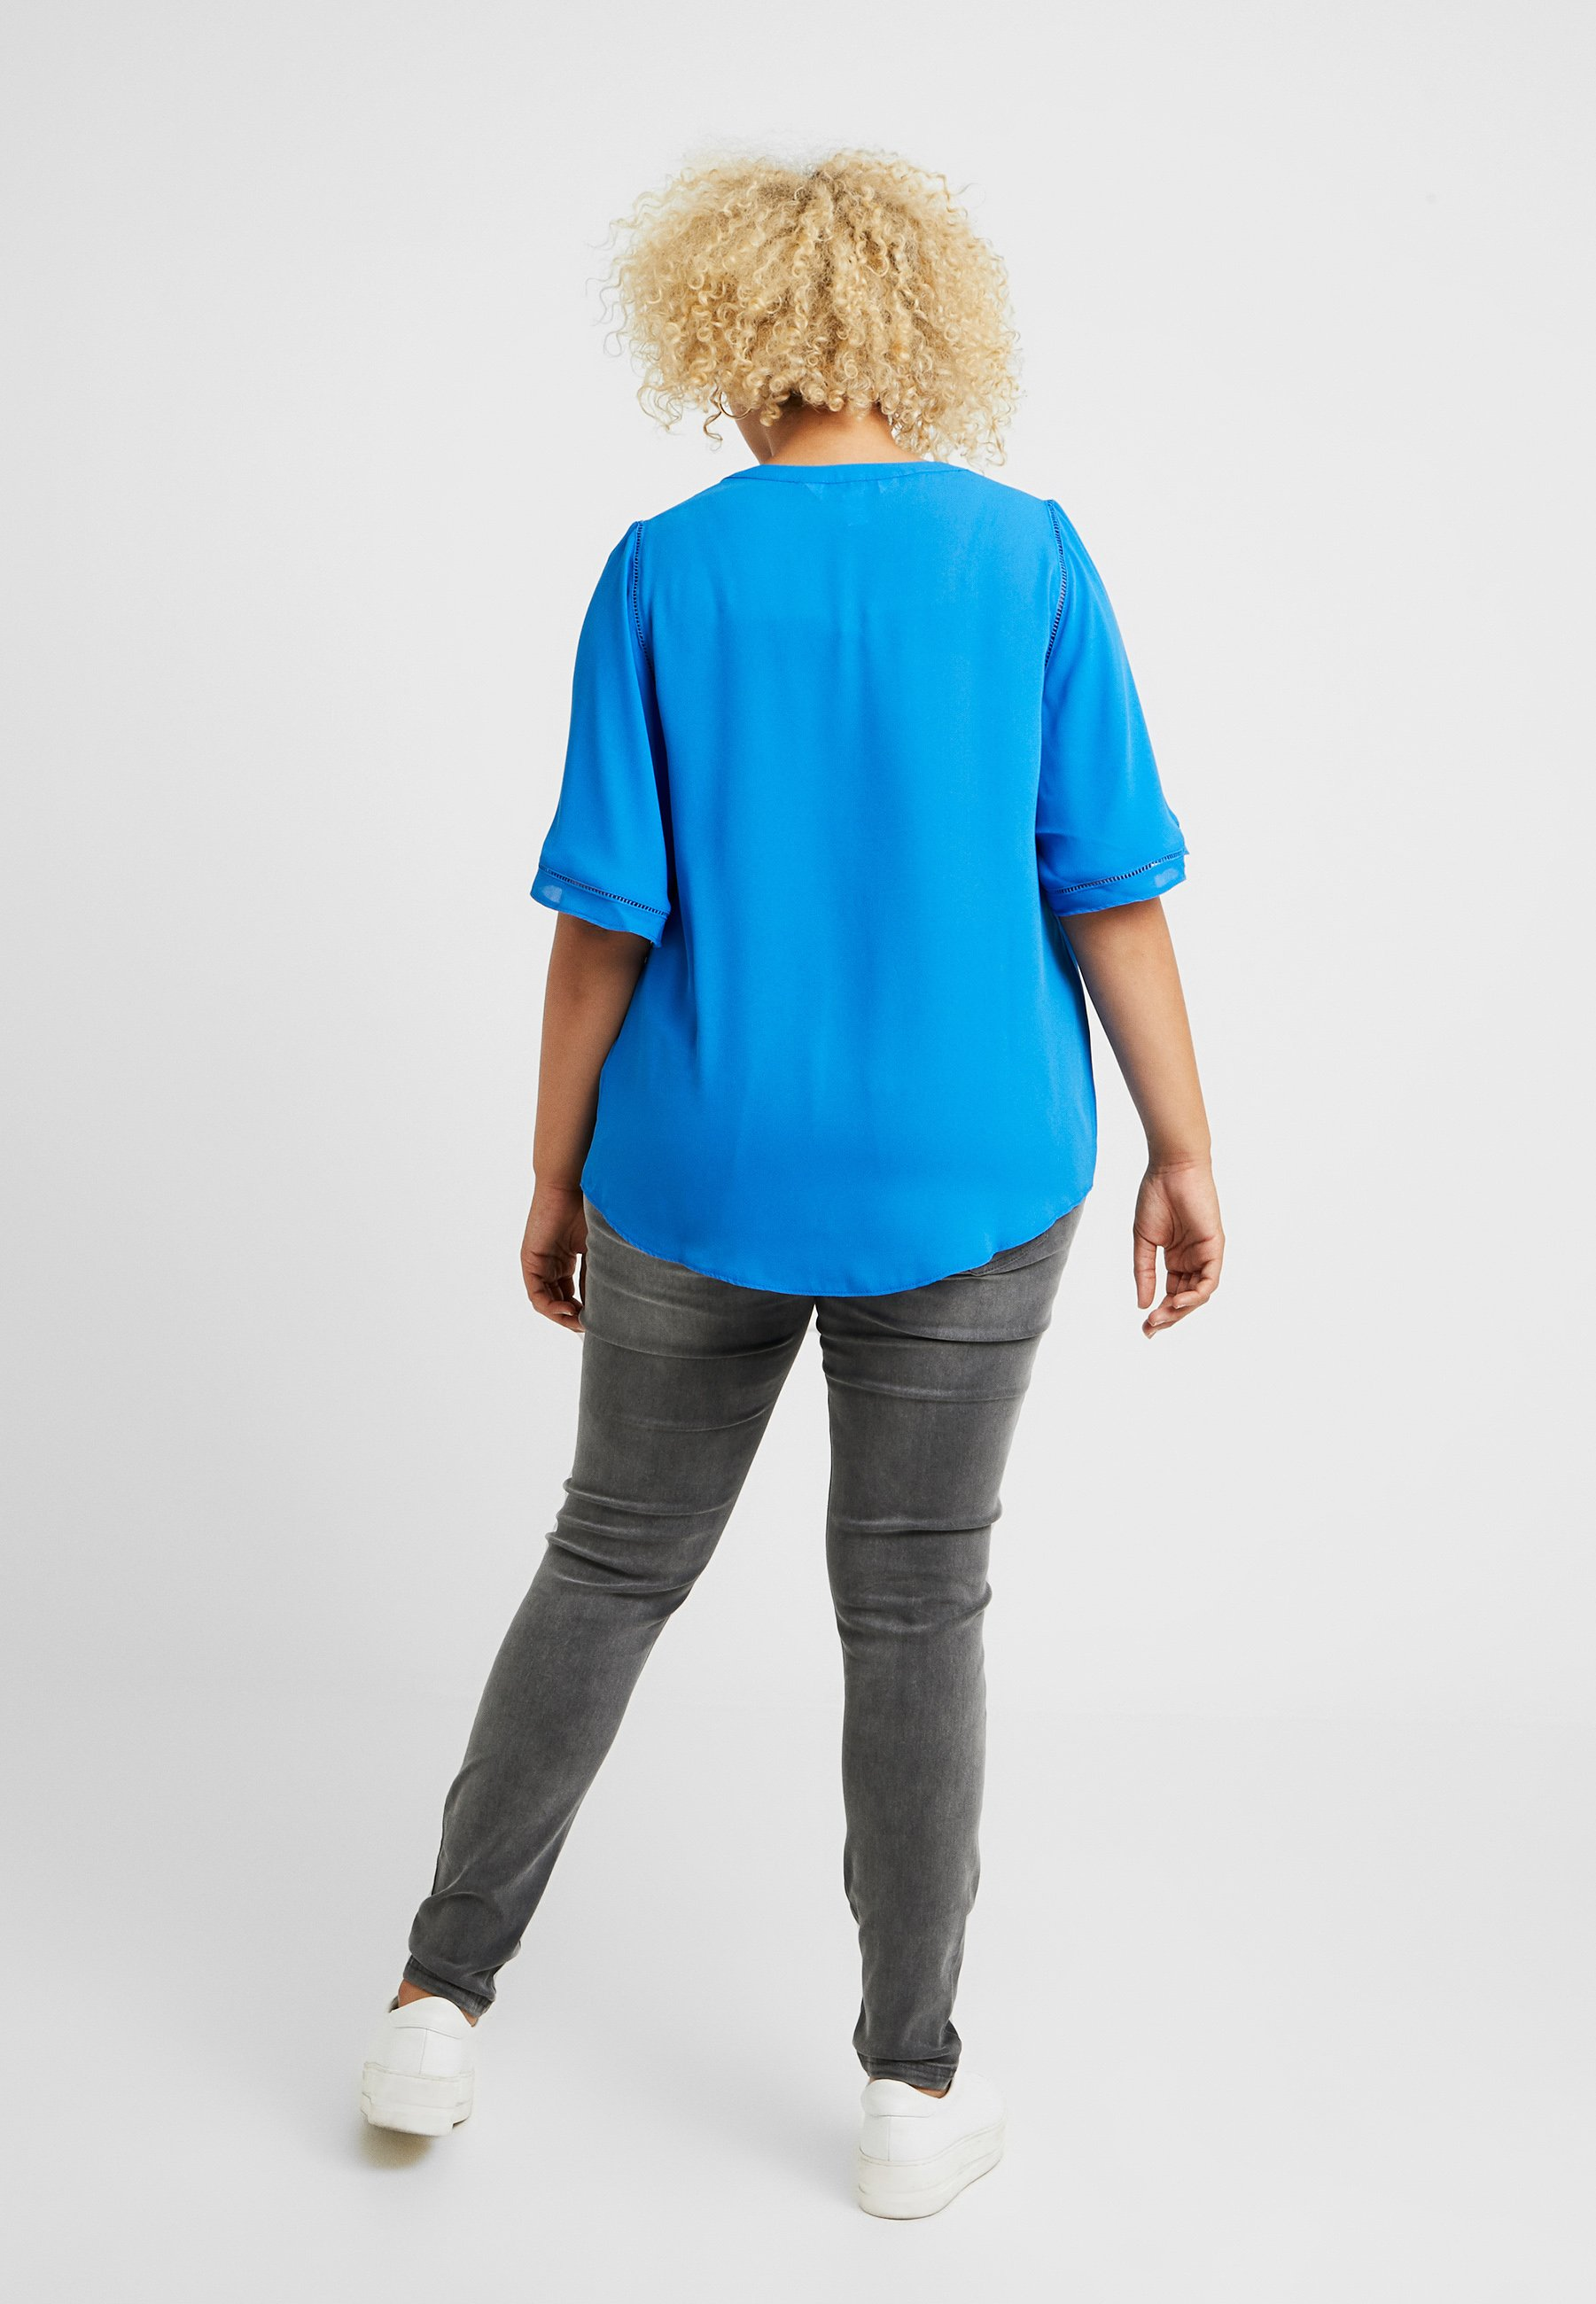 TunicBlouse Ladder Blue Capsule By Simply Insert Be Cobalt HEWD2I9Y